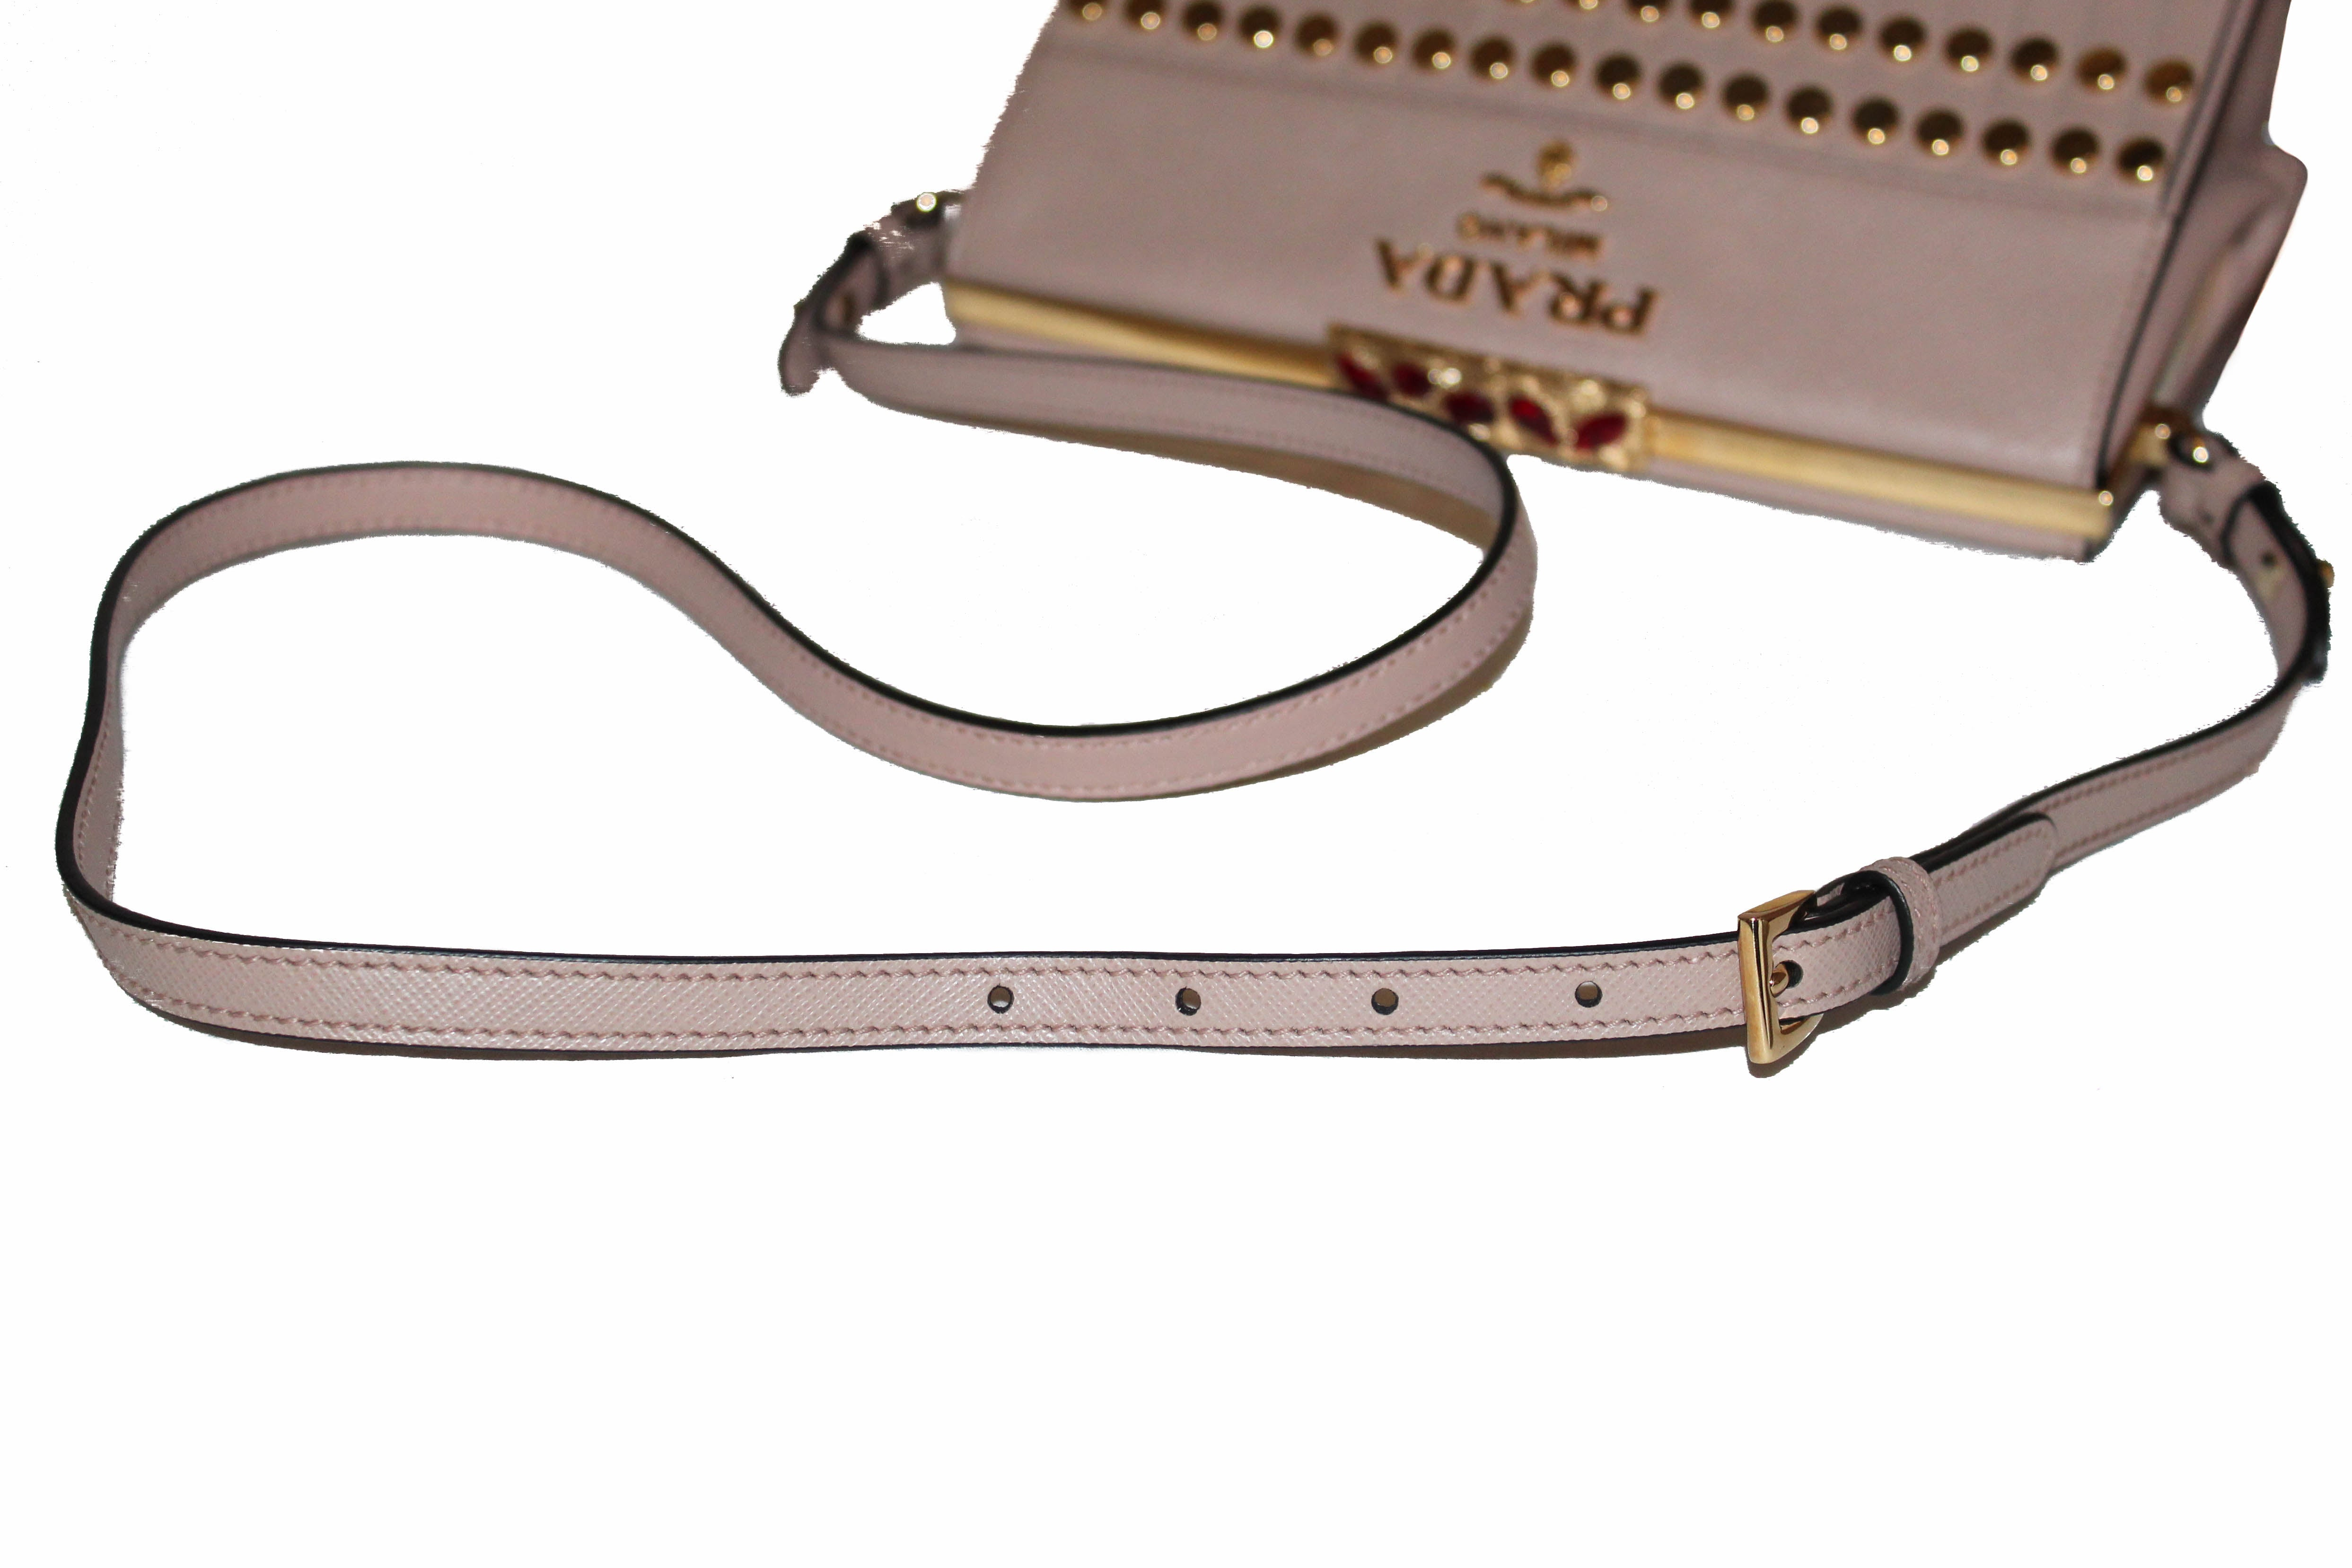 Authentic Prada Beige Blush Saffiano and City Idol Fringes and Studs Leather Bag 1BC046